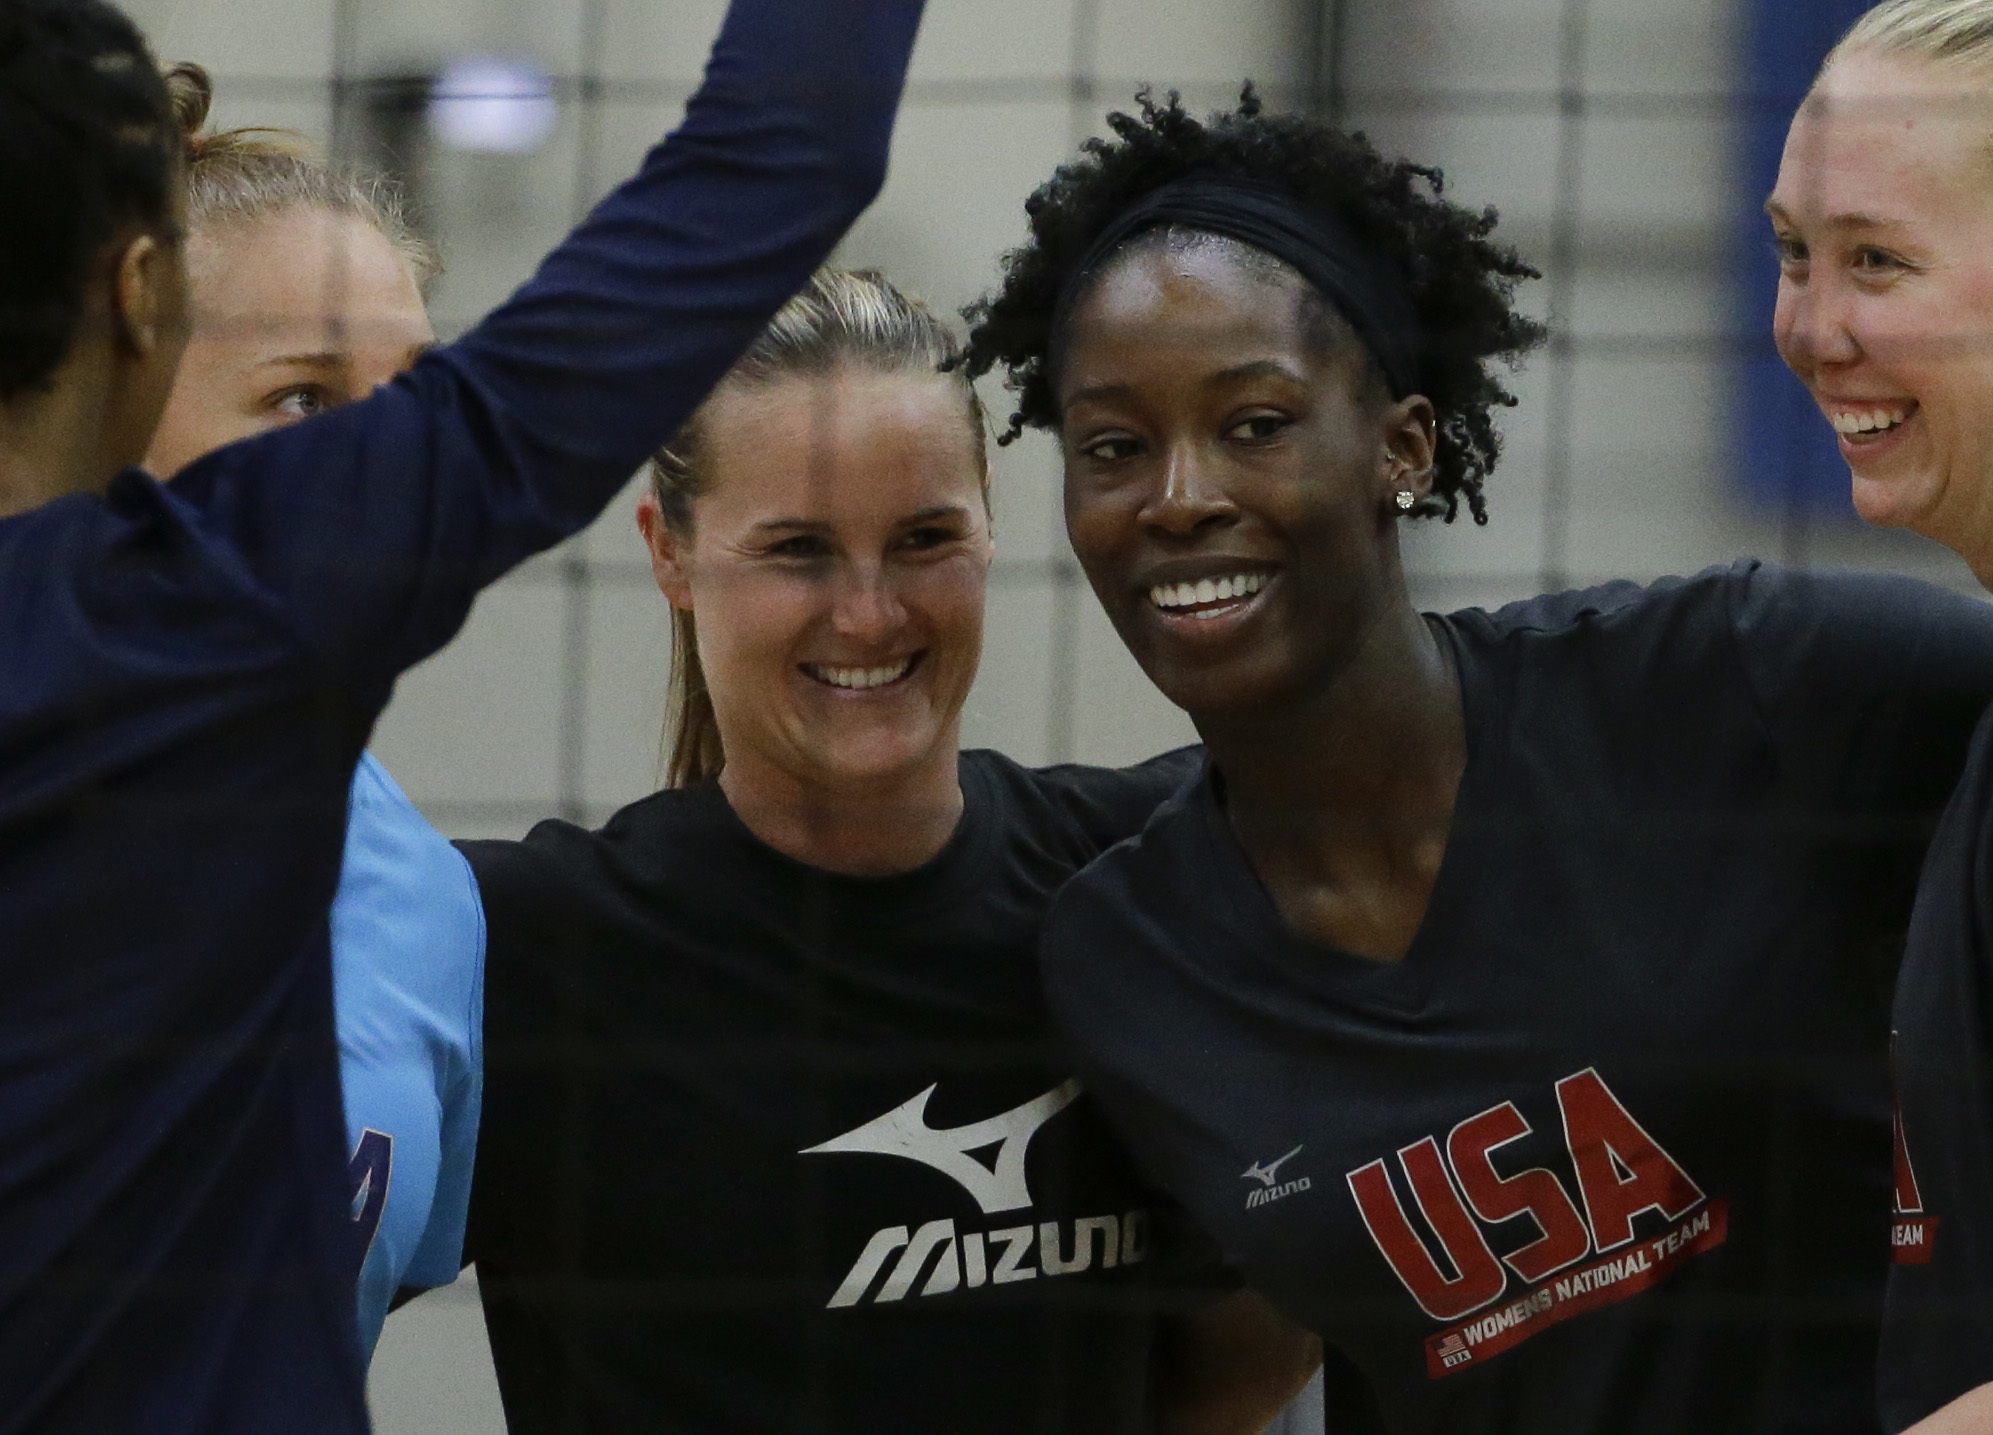 U.S. women's volleyball player Megan Easy trains, Tuesday, May 24, 2016 in Anaheim, Calif. Megan is the lone mother on U.S. roster. (AP Photo/Chris Carlson)